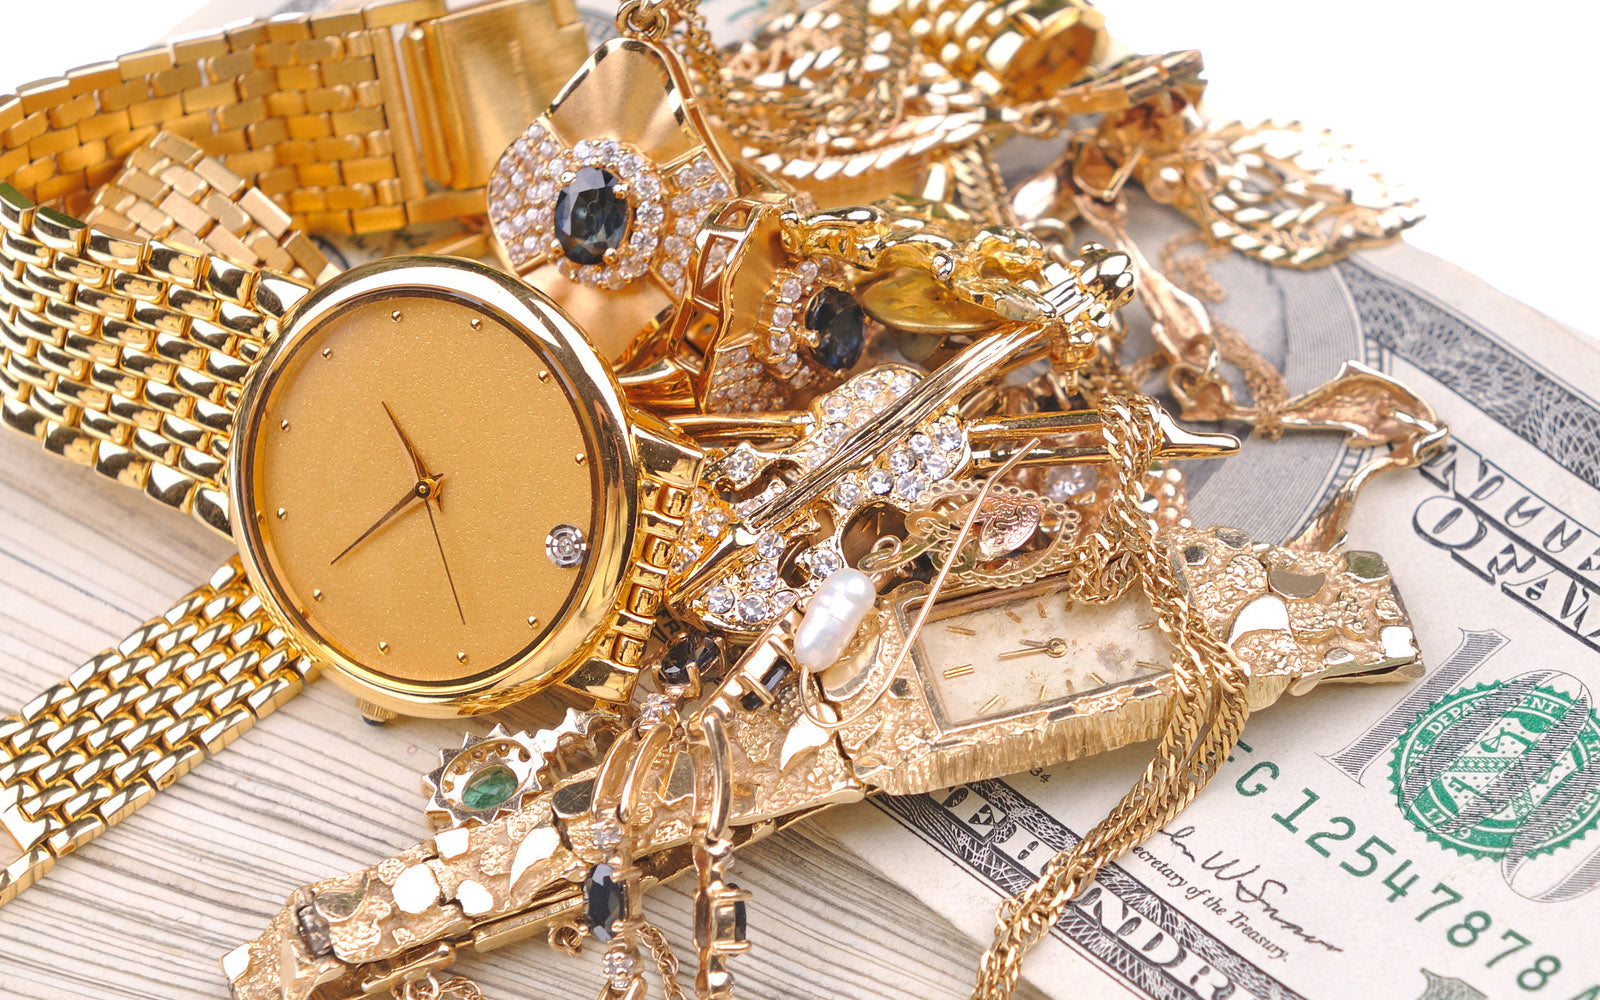 Is My Old Jewelry Worth Money? How to Find Out